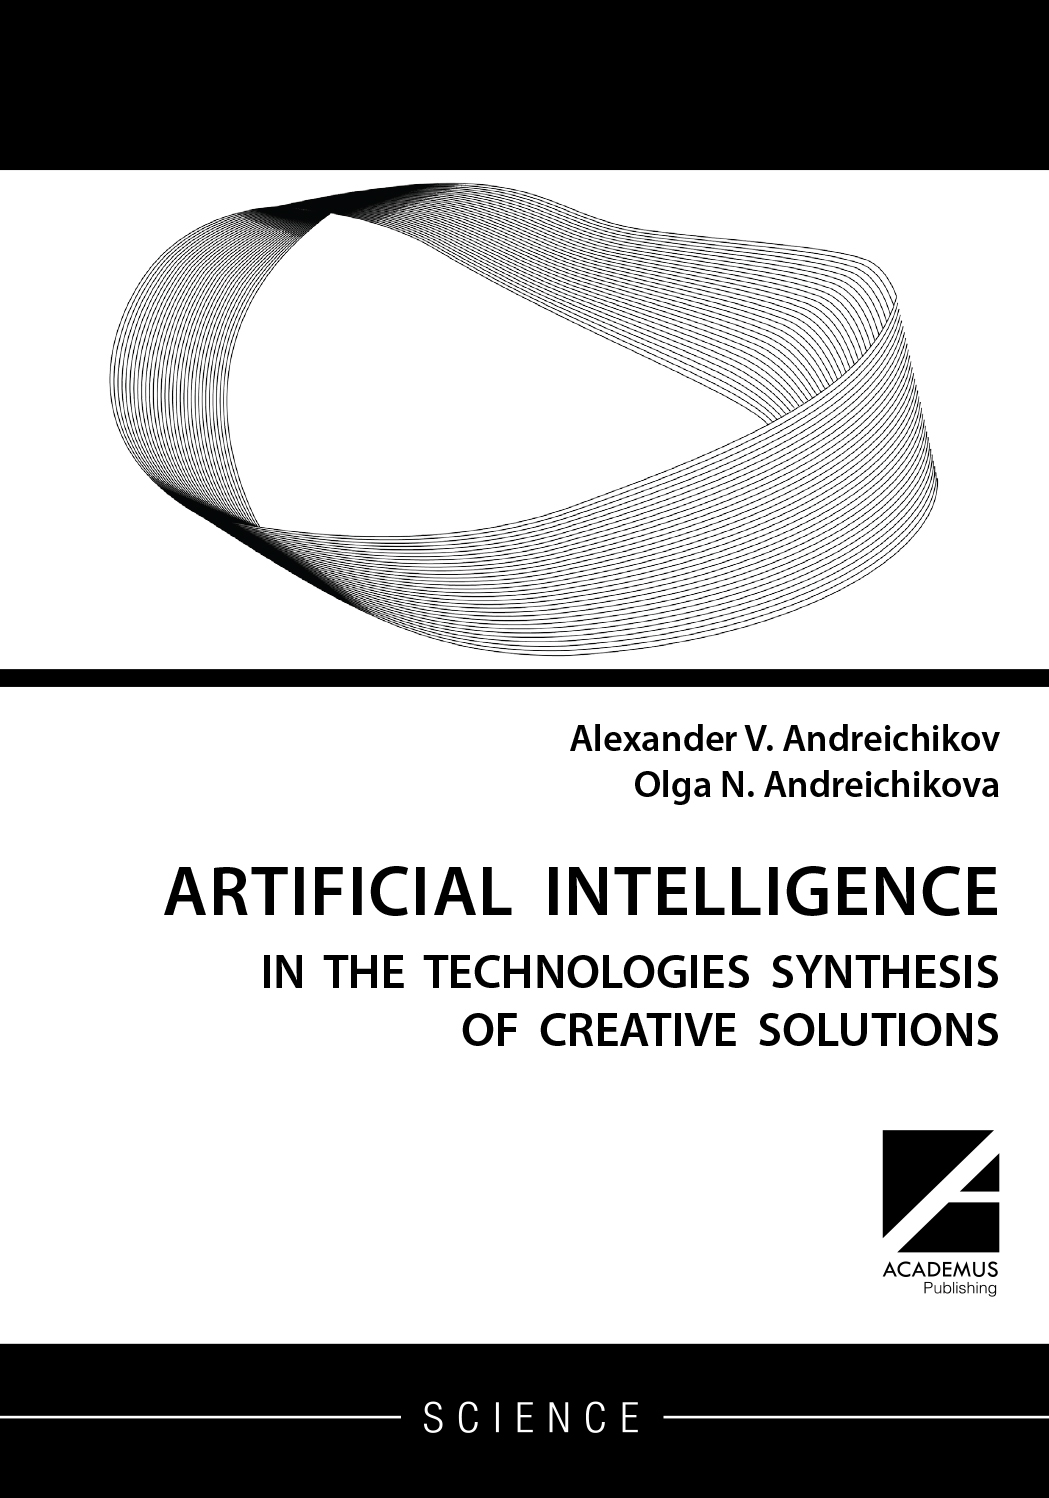 ARTIFICIAL INTELLIGENCE IN THE SYNTHESIS OF CREATIVE SOLUTIONS